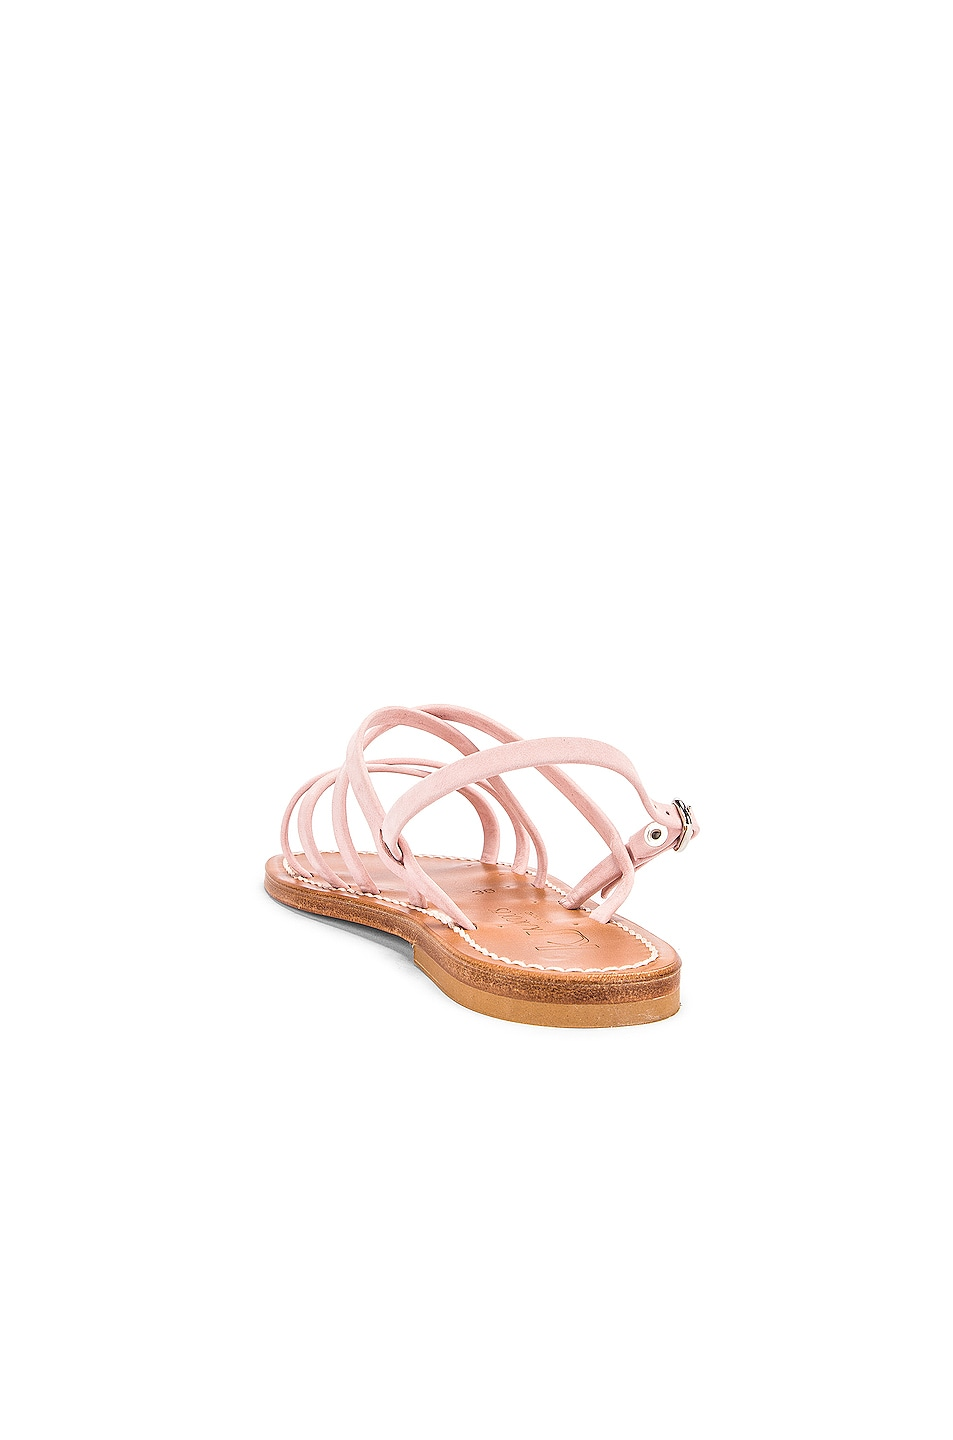 Image 3 of K Jacques Talara Sandal in Nubuk Berny